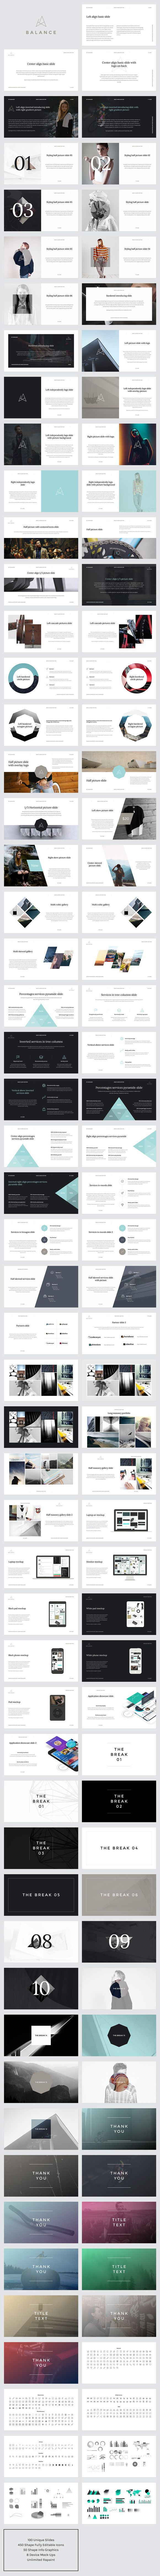 BALANCE Keynote Presentation by GoaShape on Behance